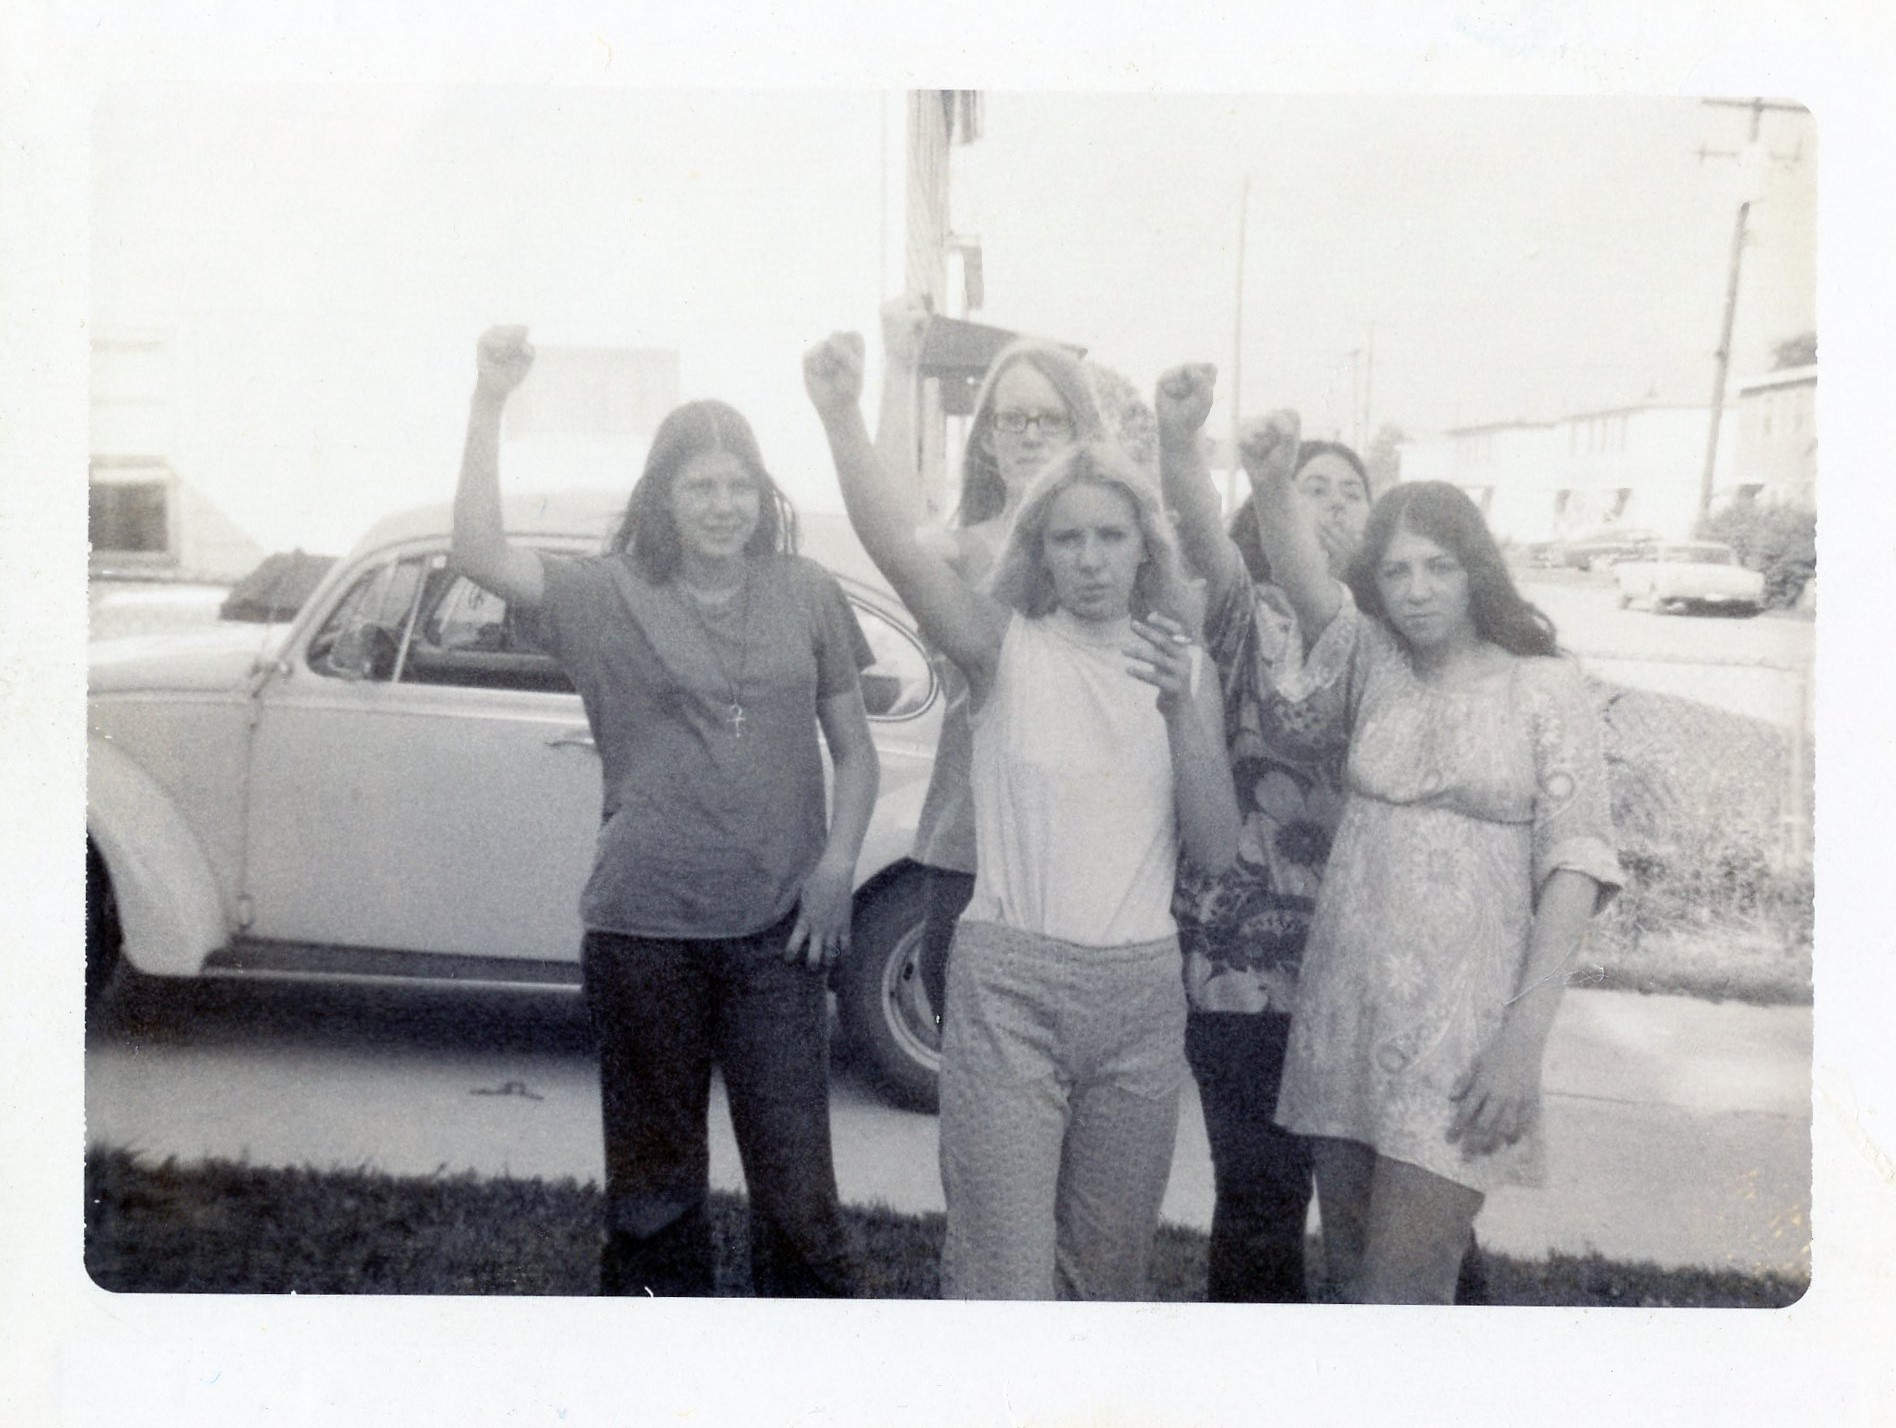 Polaroid of me and some of the gang late 1960's